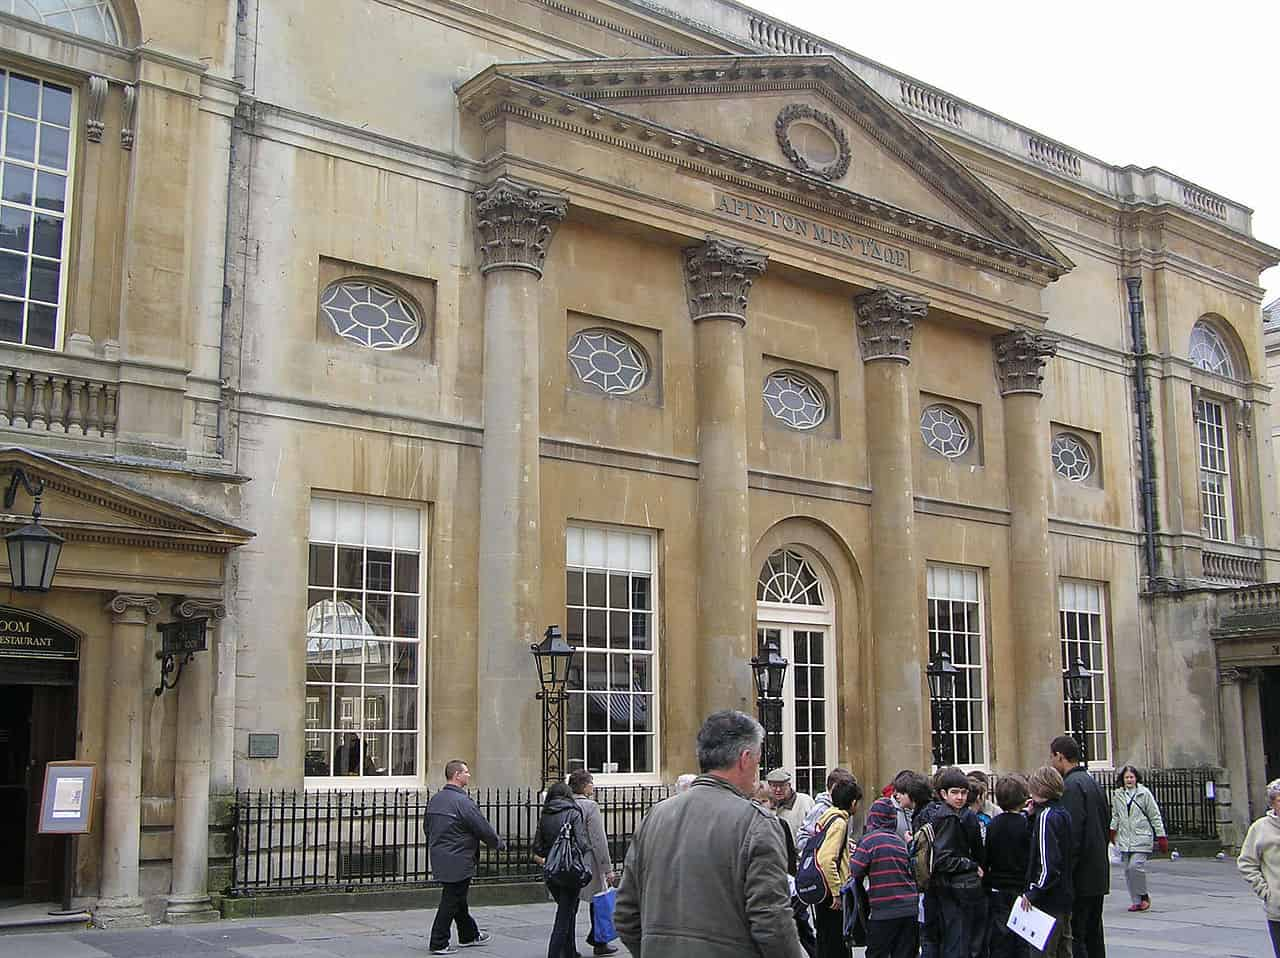 Pump rooms in Bath with some beautiful Georgian architecture - 2 days in Bath